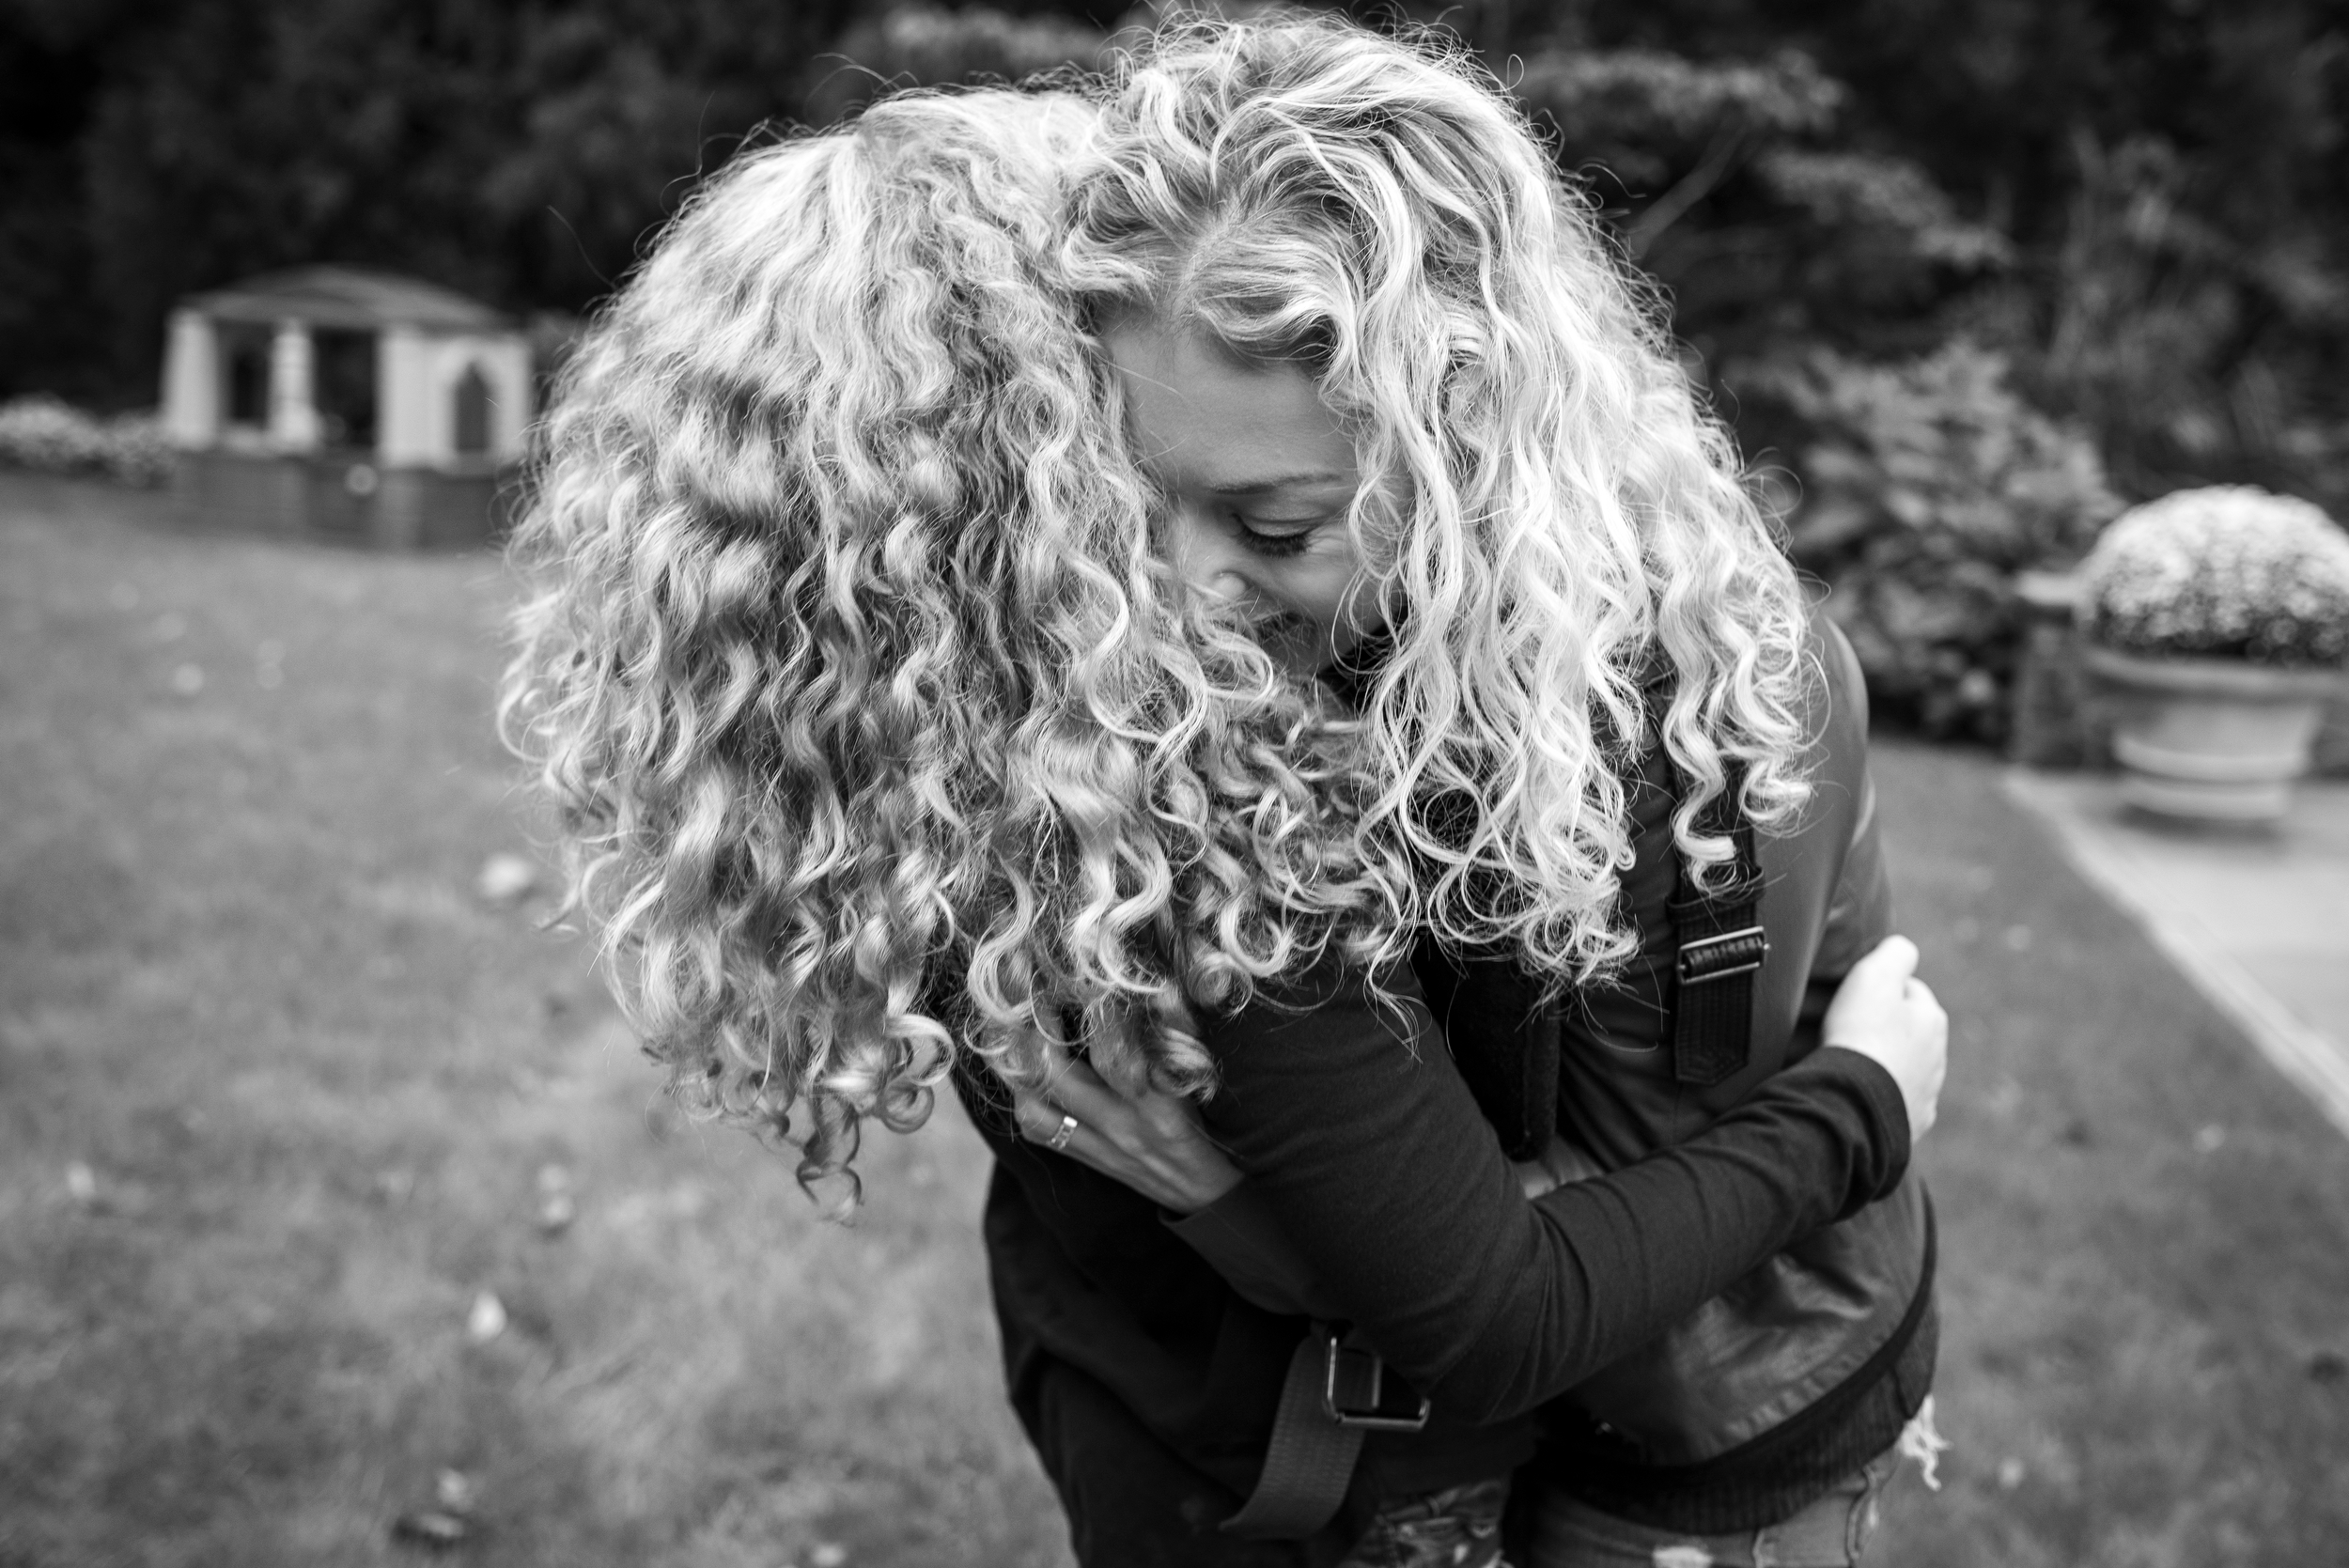 Curls for miles - A typical Saturday afternoon with this sweet and loving bunch creating moments that consisted of Legos, card games, a mountain of stuffed animals and endless hugs. See their story.